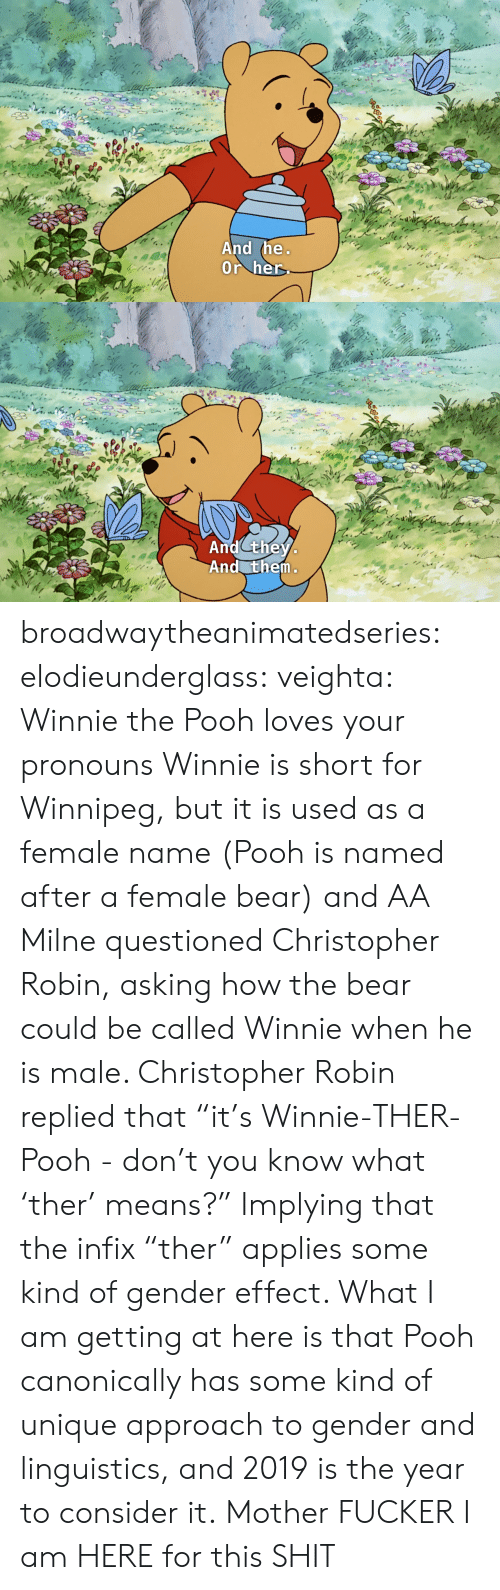 "Winnie the Pooh: And the  Or her   And they  And them broadwaytheanimatedseries: elodieunderglass:  veighta: Winnie the Pooh loves your pronouns  Winnie is short for Winnipeg, but it is used as a female name (Pooh is named after a female bear) and AA Milne questioned Christopher Robin, asking how the bear could be called Winnie when he is male. Christopher Robin replied that ""it's Winnie-THER-Pooh - don't you know what 'ther' means?"" Implying that the infix ""ther"" applies some kind of gender effect.  What I am getting at here is that Pooh canonically has some kind of unique approach to gender and linguistics, and 2019 is the year to consider it.   Mother FUCKER I am HERE for this SHIT"